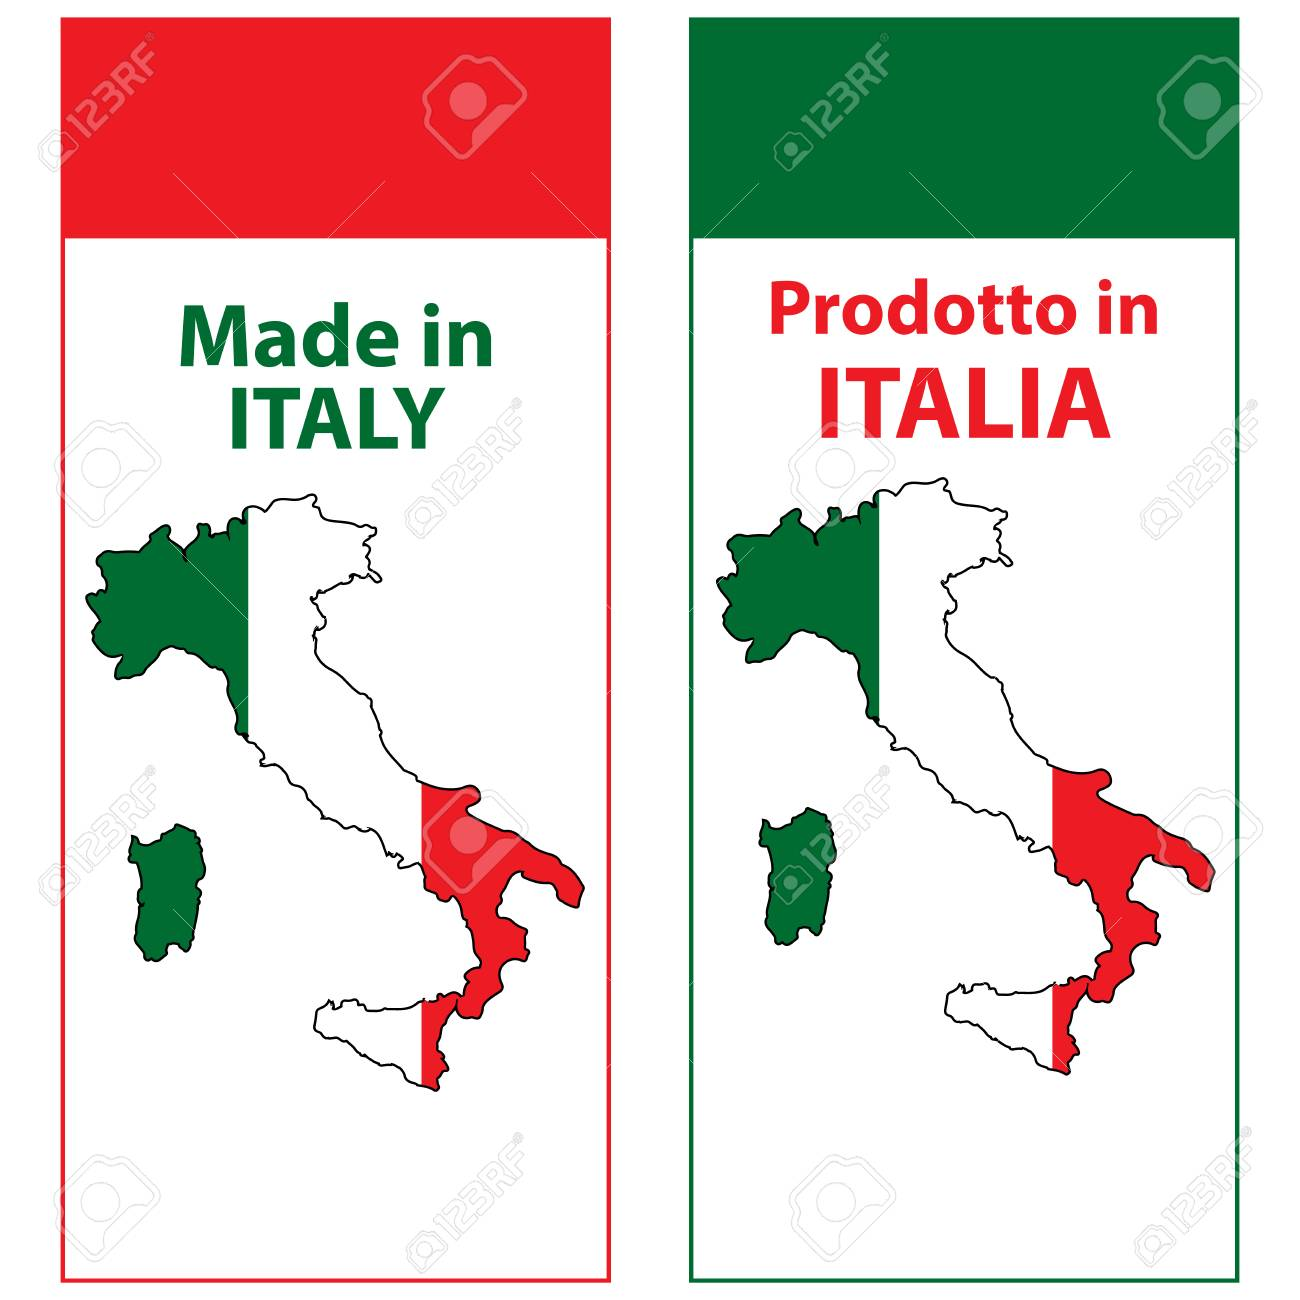 Map Of Italy In English.Made In Italy Prodotto In Italia Sticker Set For Print Designed